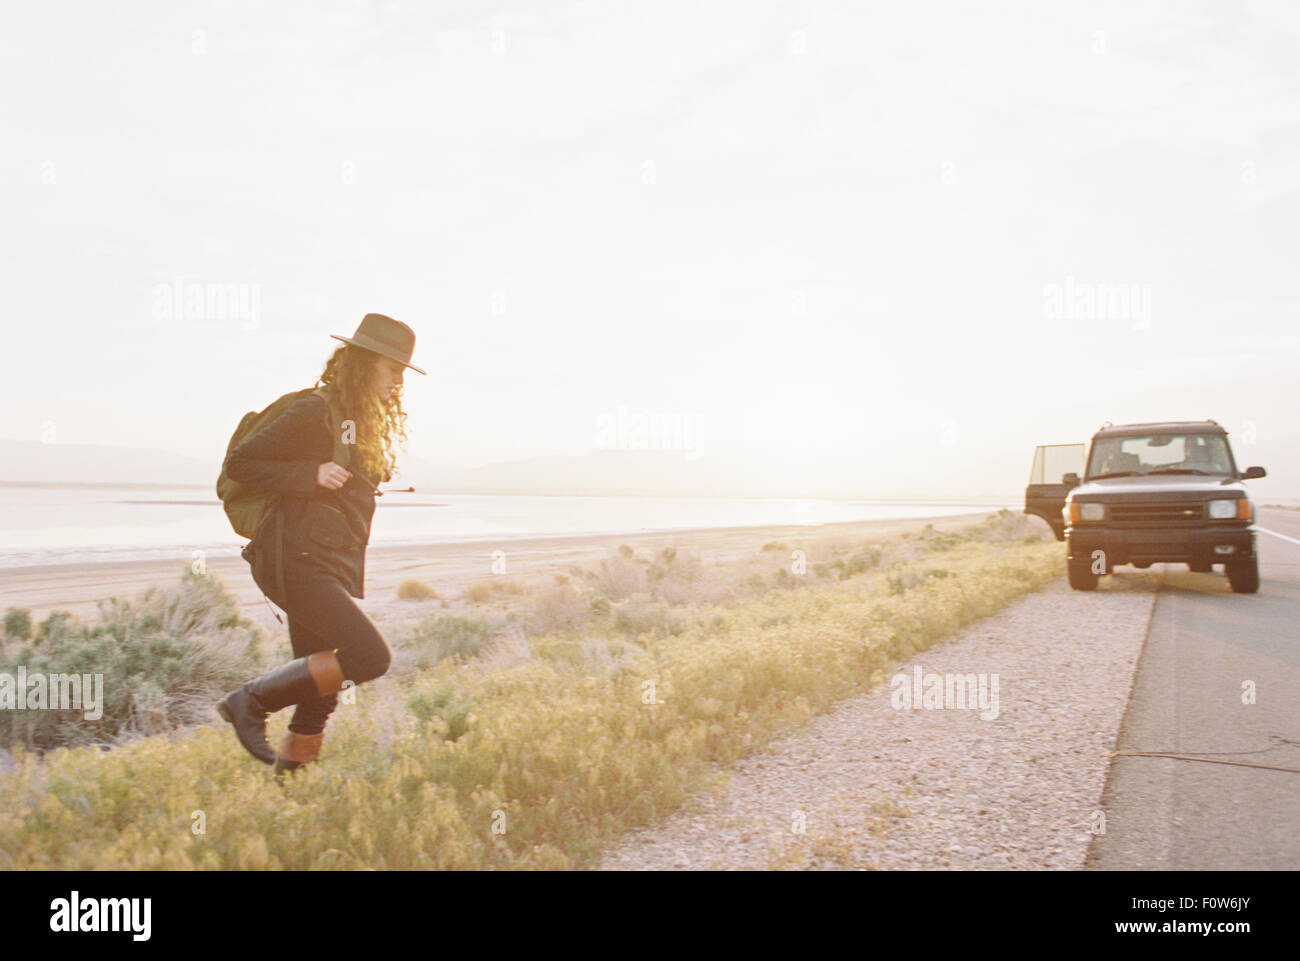 A woman wearing a hat and carrying a backpack near a 4x4 car, - Stock Image